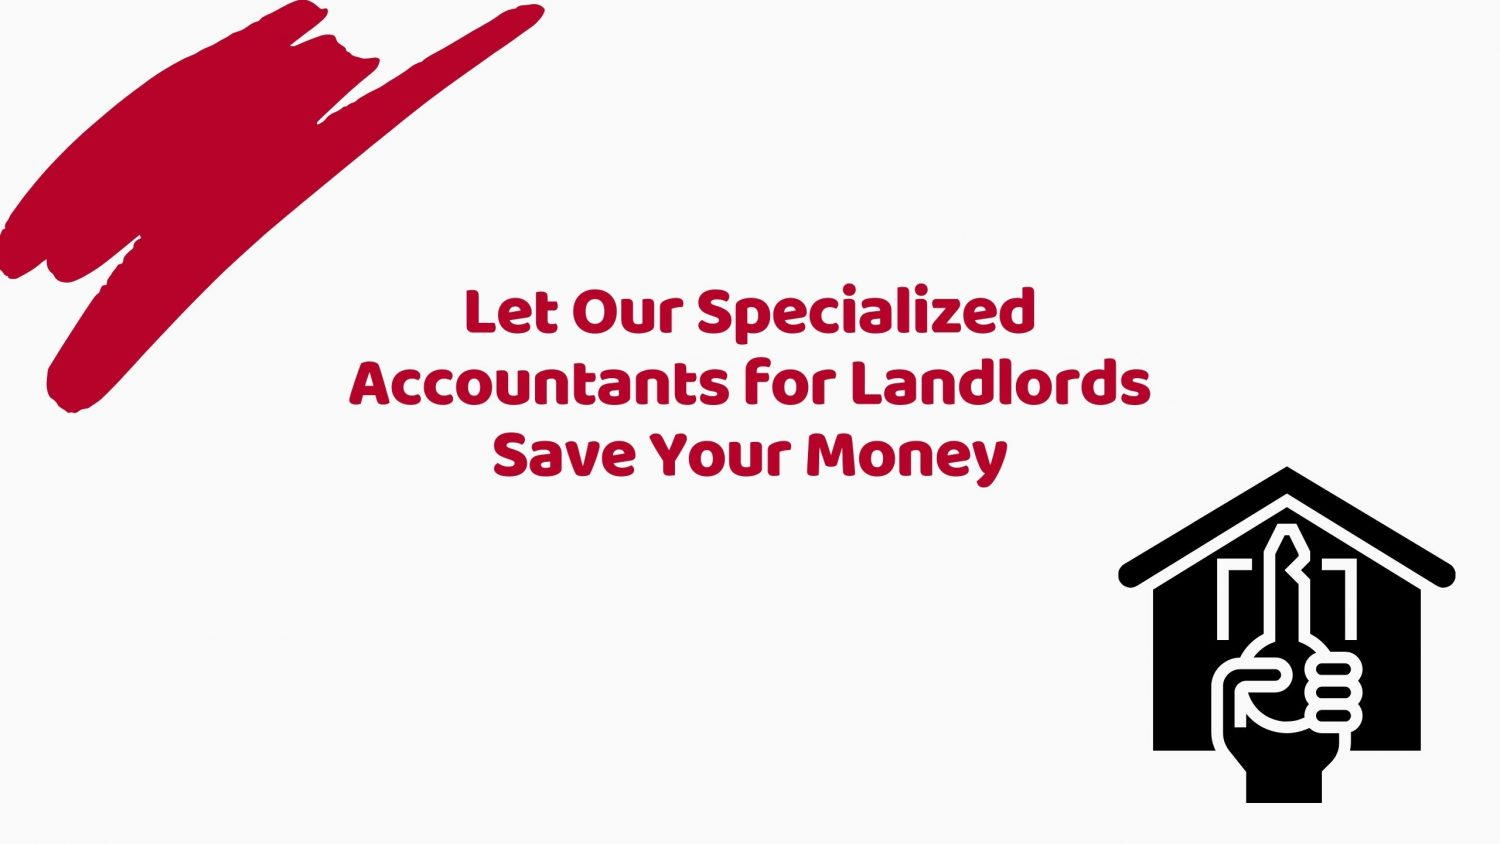 Accountants for landlords